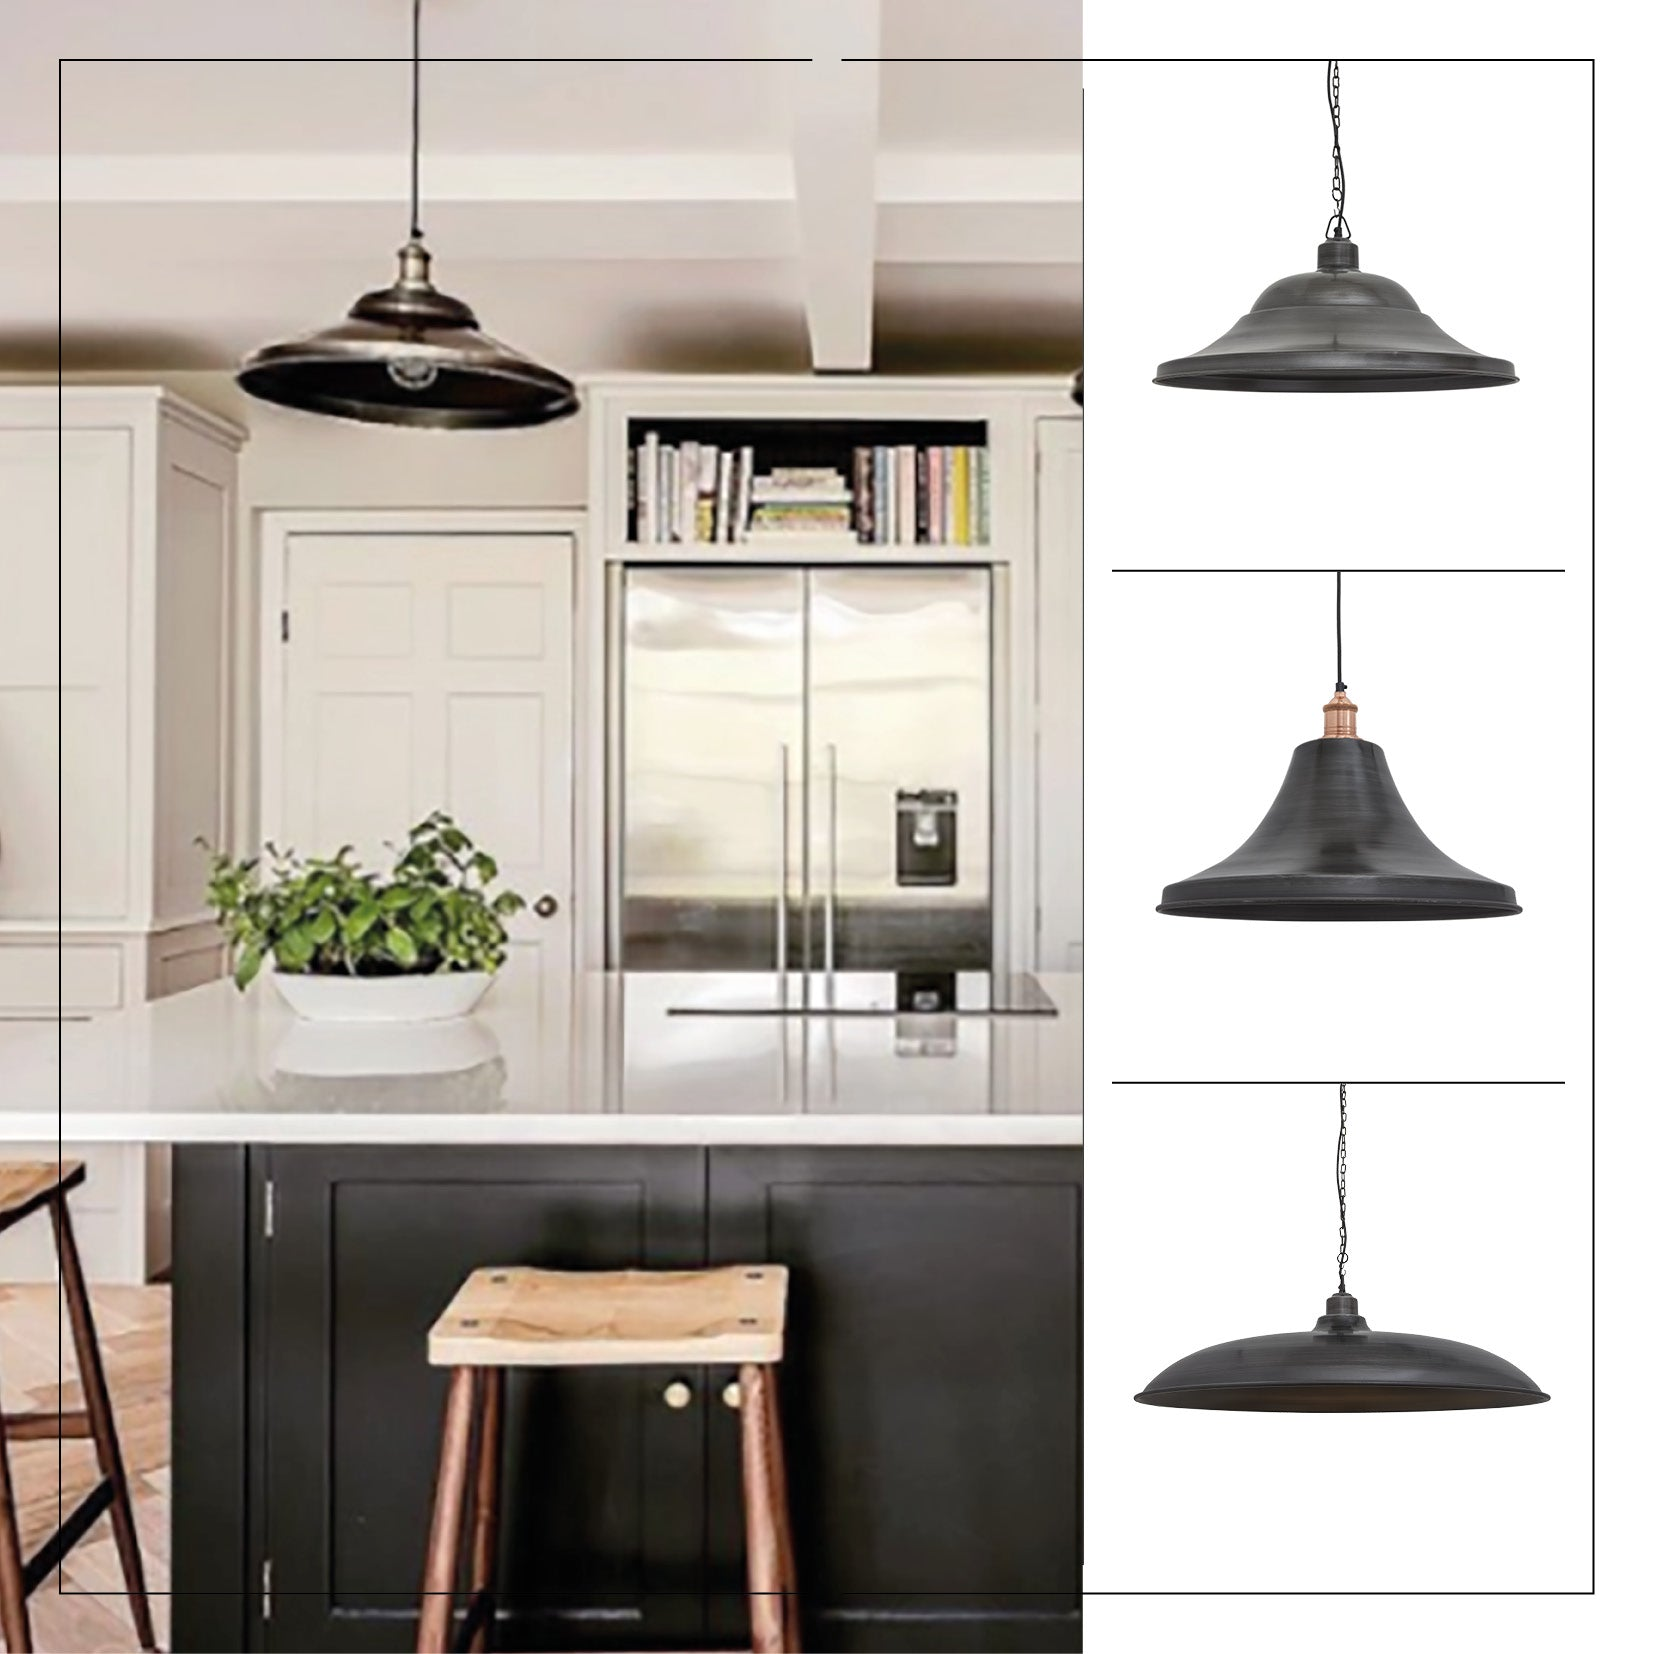 Industrial lights in a kitchen setting